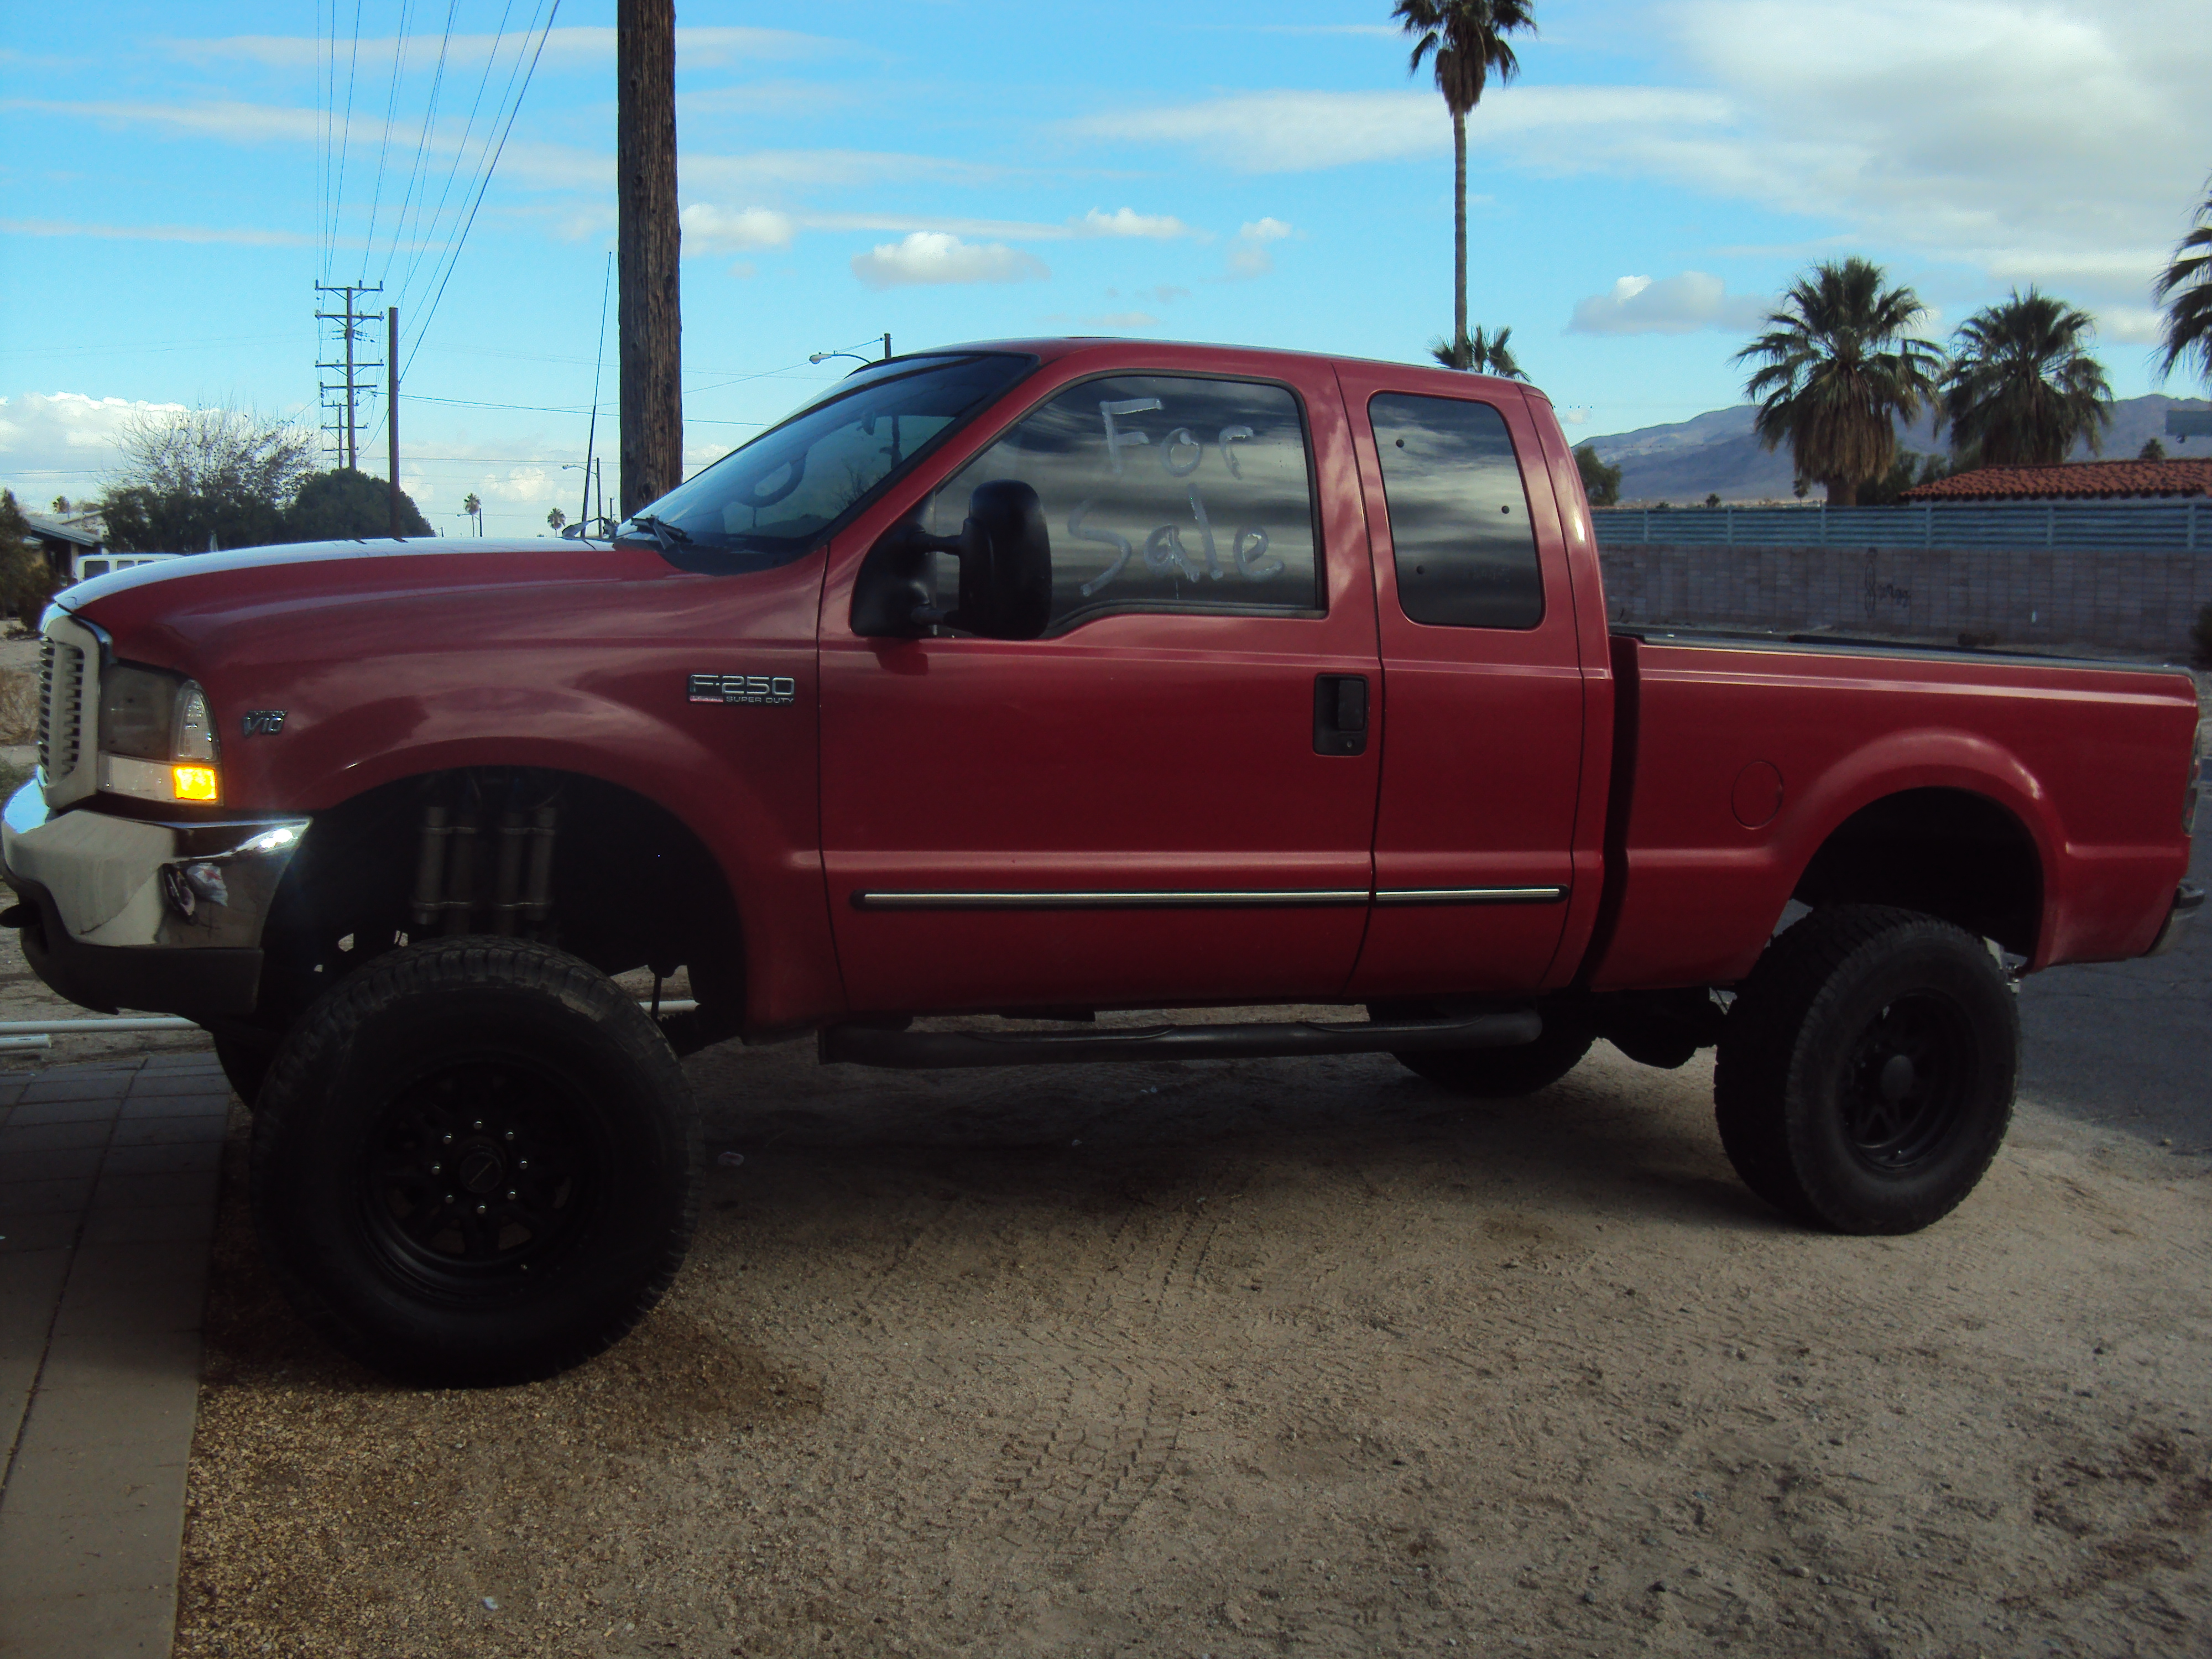 Ford f-250 2000 photo - 7